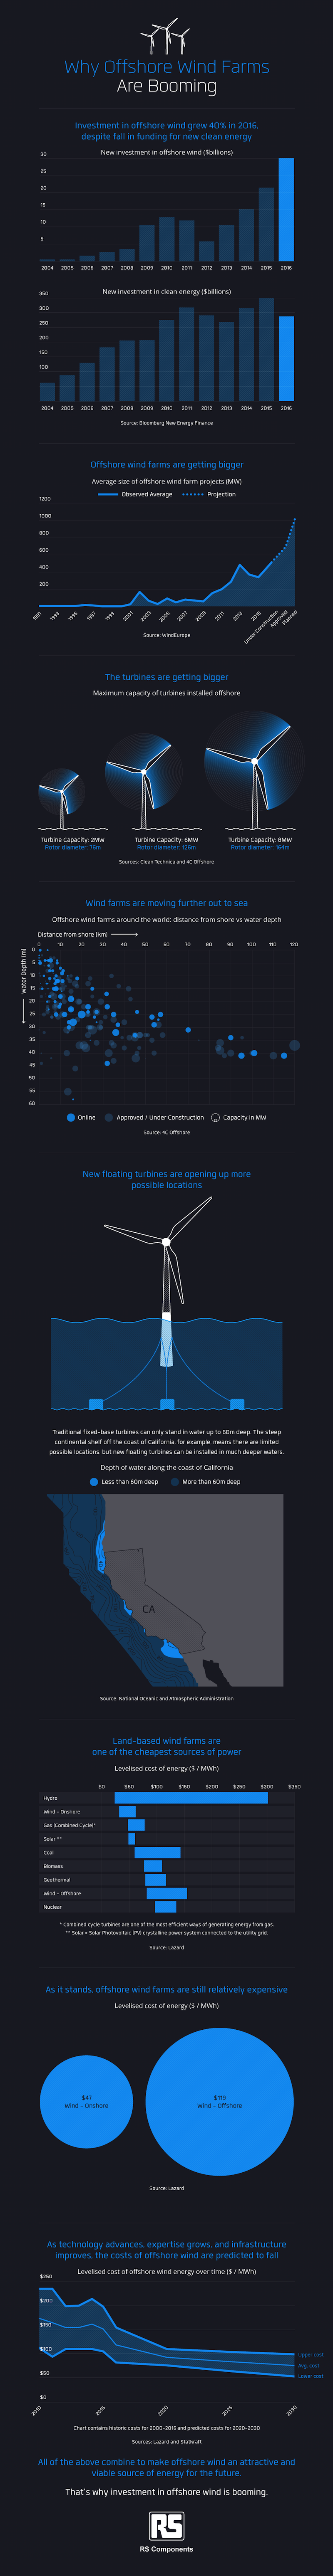 Infographic wind farms